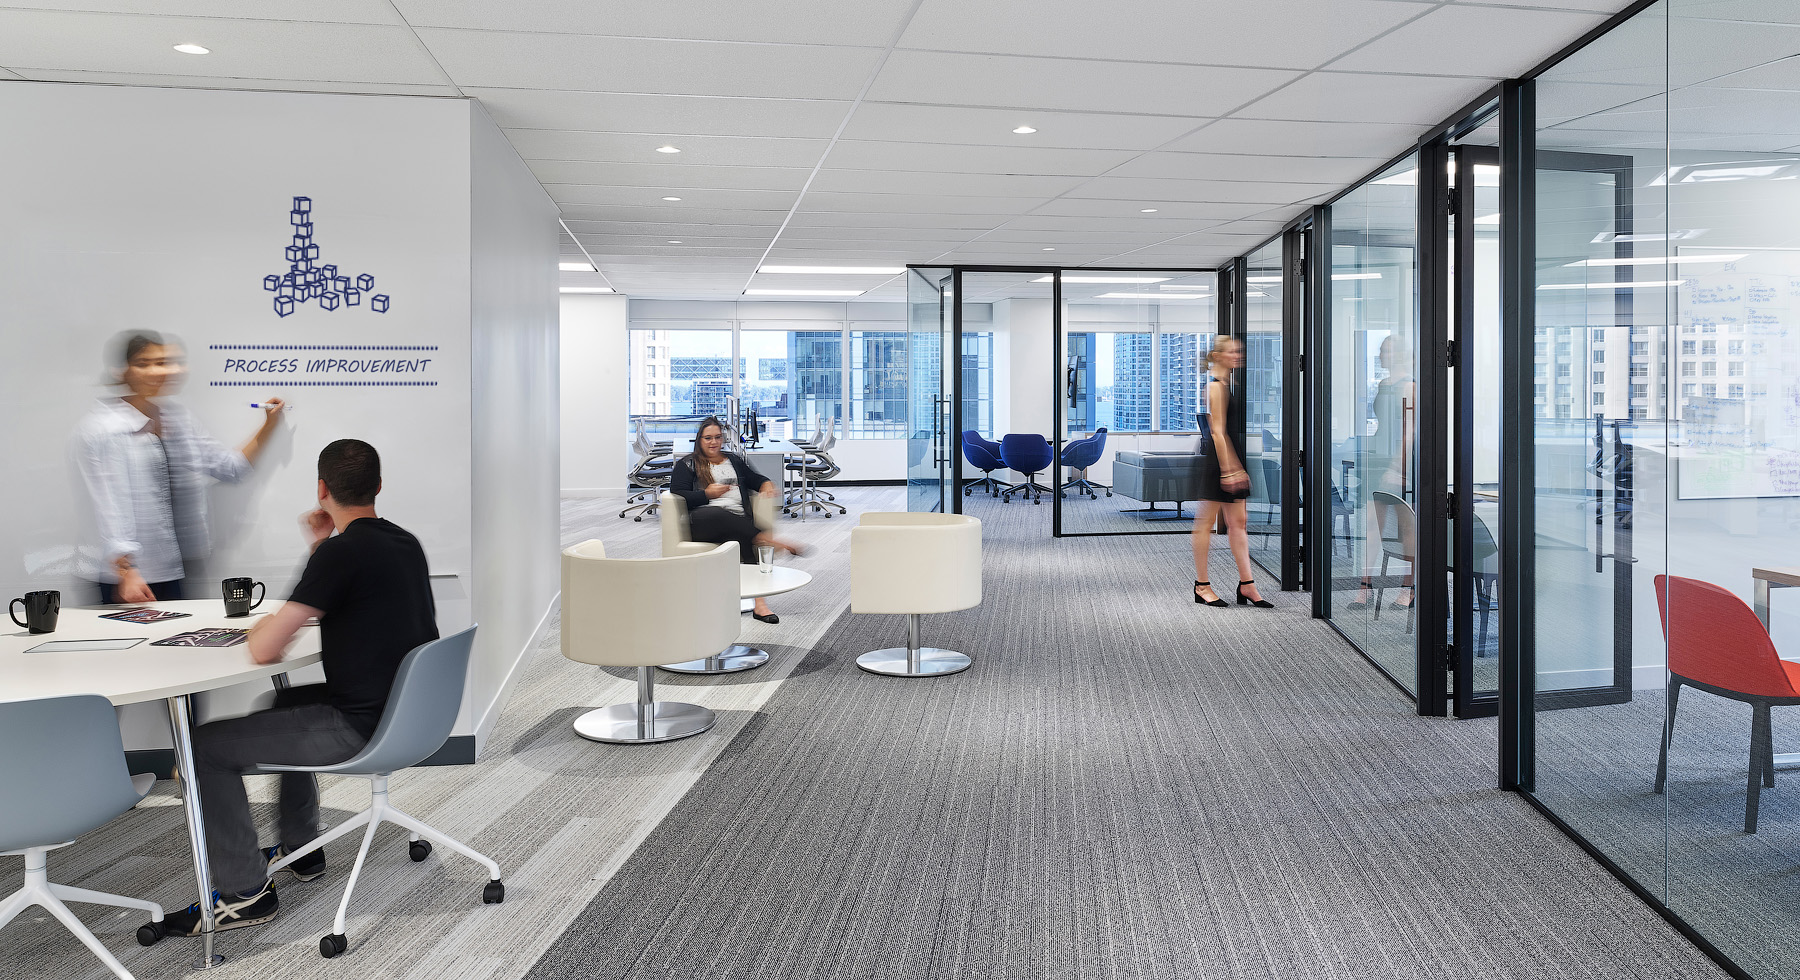 Optimus Toronto collaboration space with glass walls, various furniture, and whiteboard walls